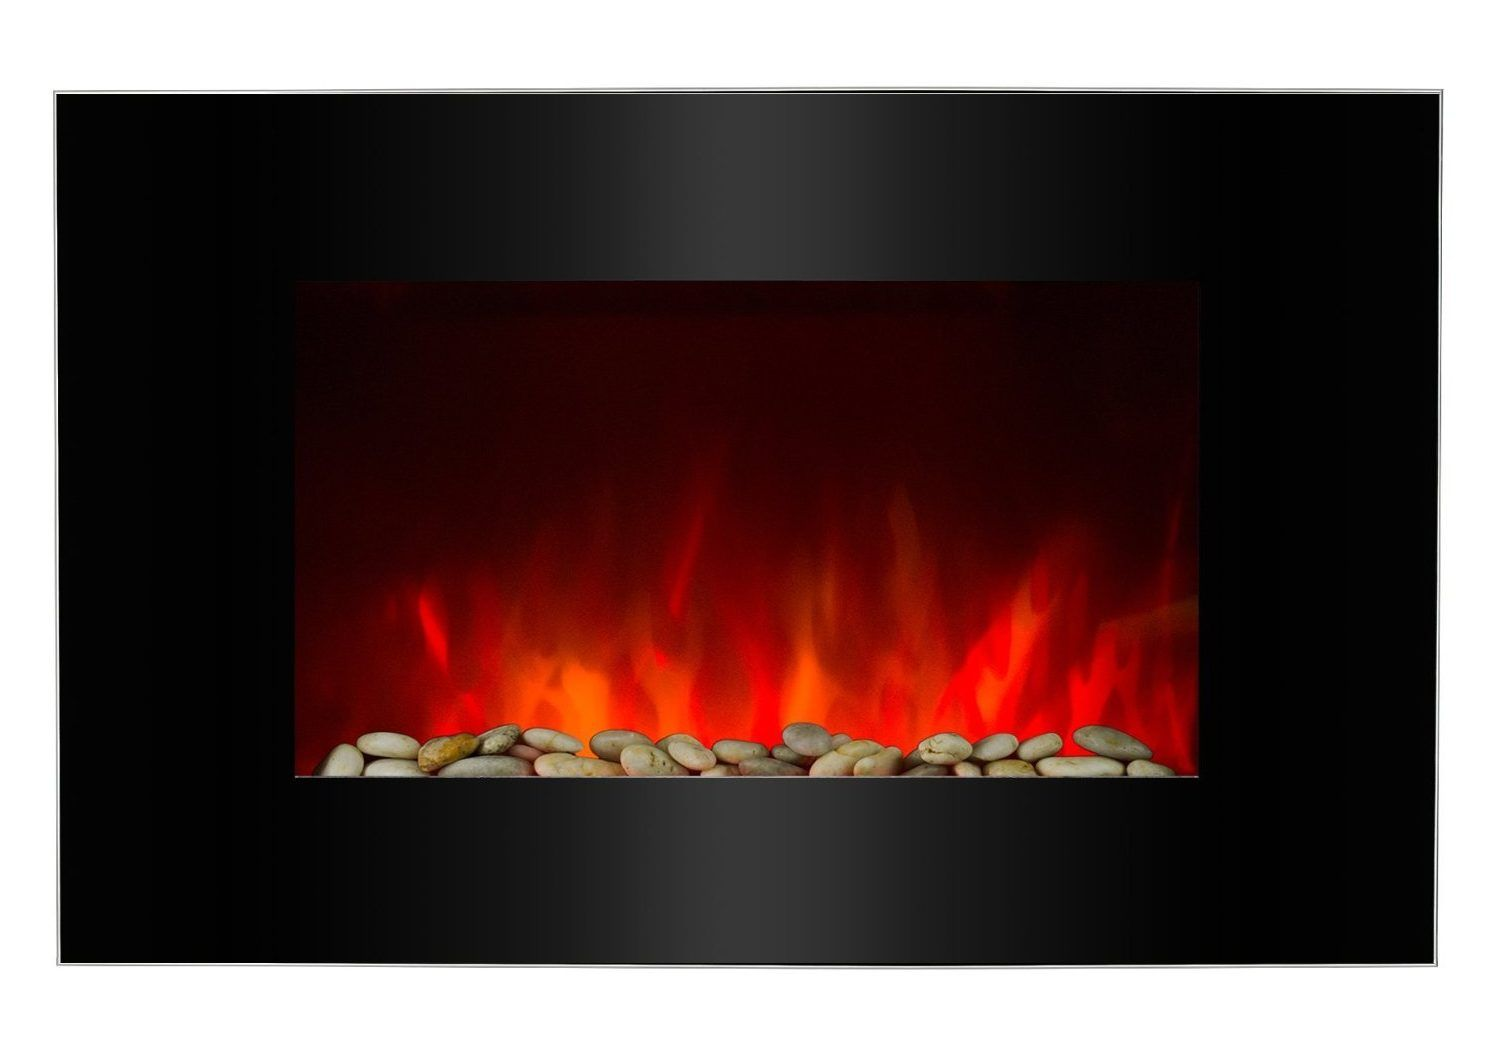 25 Fireplace Decorating Ideas With Gas Logs Electric Logs And Glass Rocks Indoor Electric Fireplace Fireplace Electric Fireplace